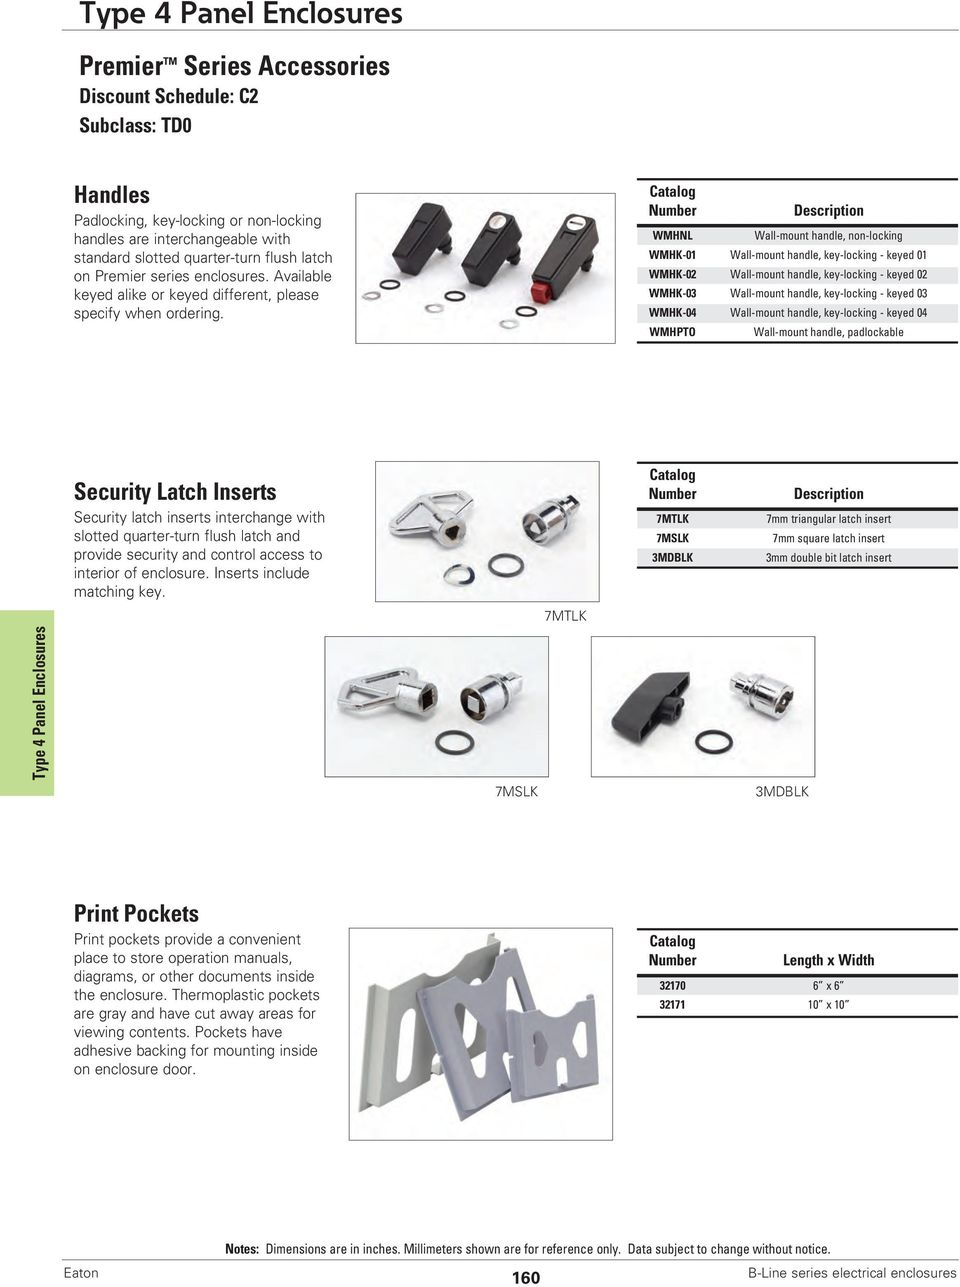 Description WMHNL Wall-mount handle, non-locking WMHK-01 Wall-mount handle, key-locking - keyed 01 WMHK-02 Wall-mount handle, key-locking - keyed 02 WMHK-03 Wall-mount handle, key-locking - keyed 03